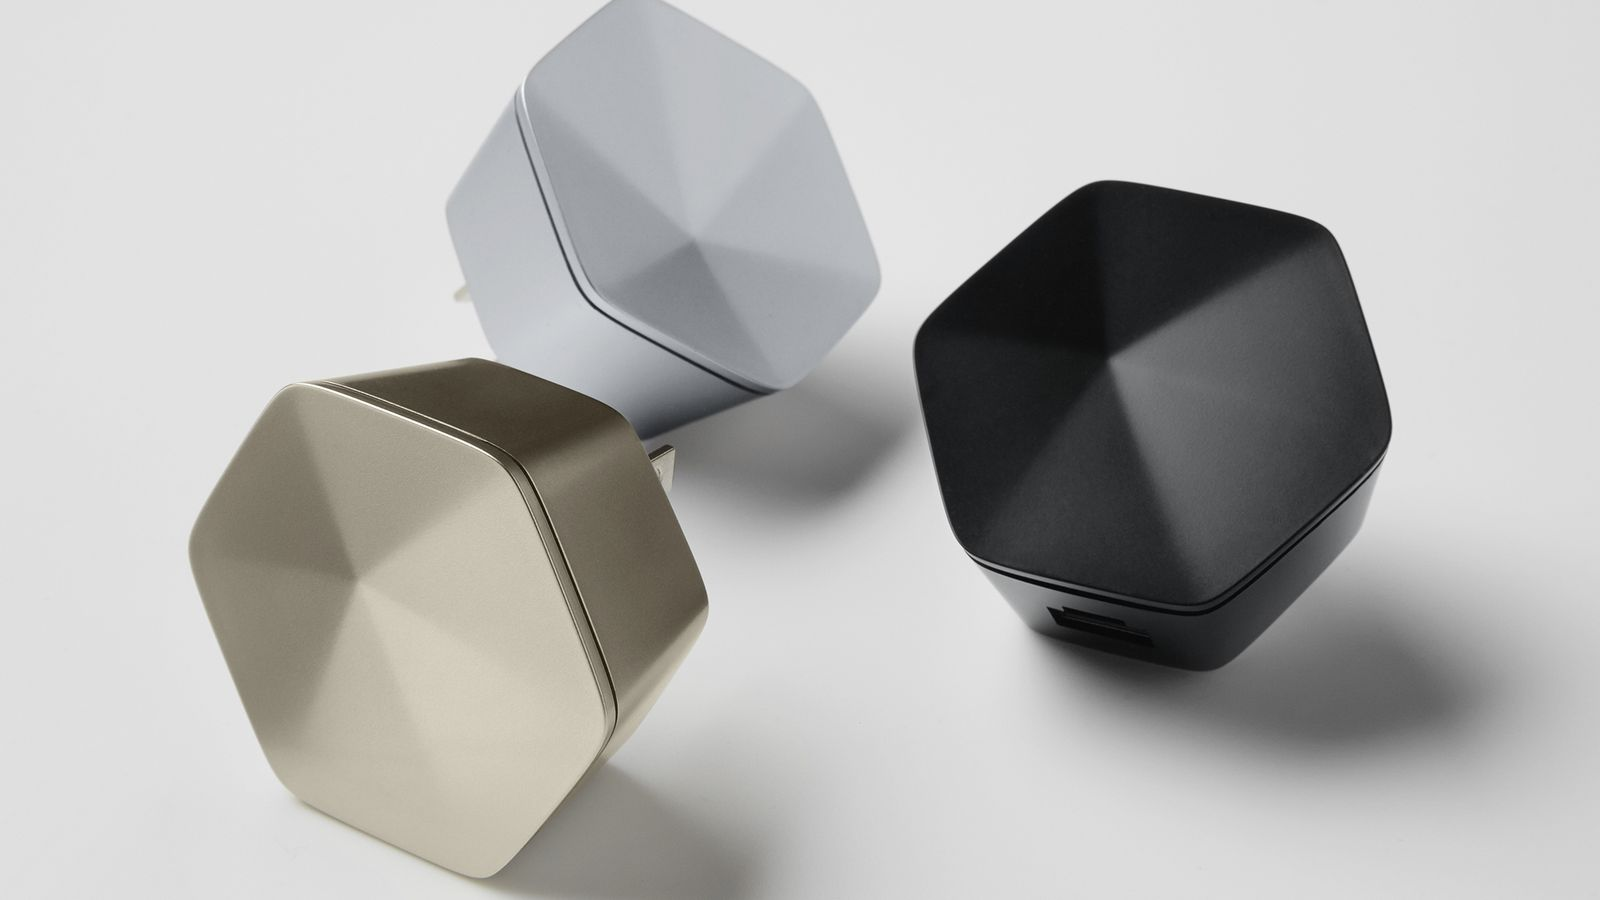 Plume S Pint Sized Wi Fi Pods Are Now Available The Verge